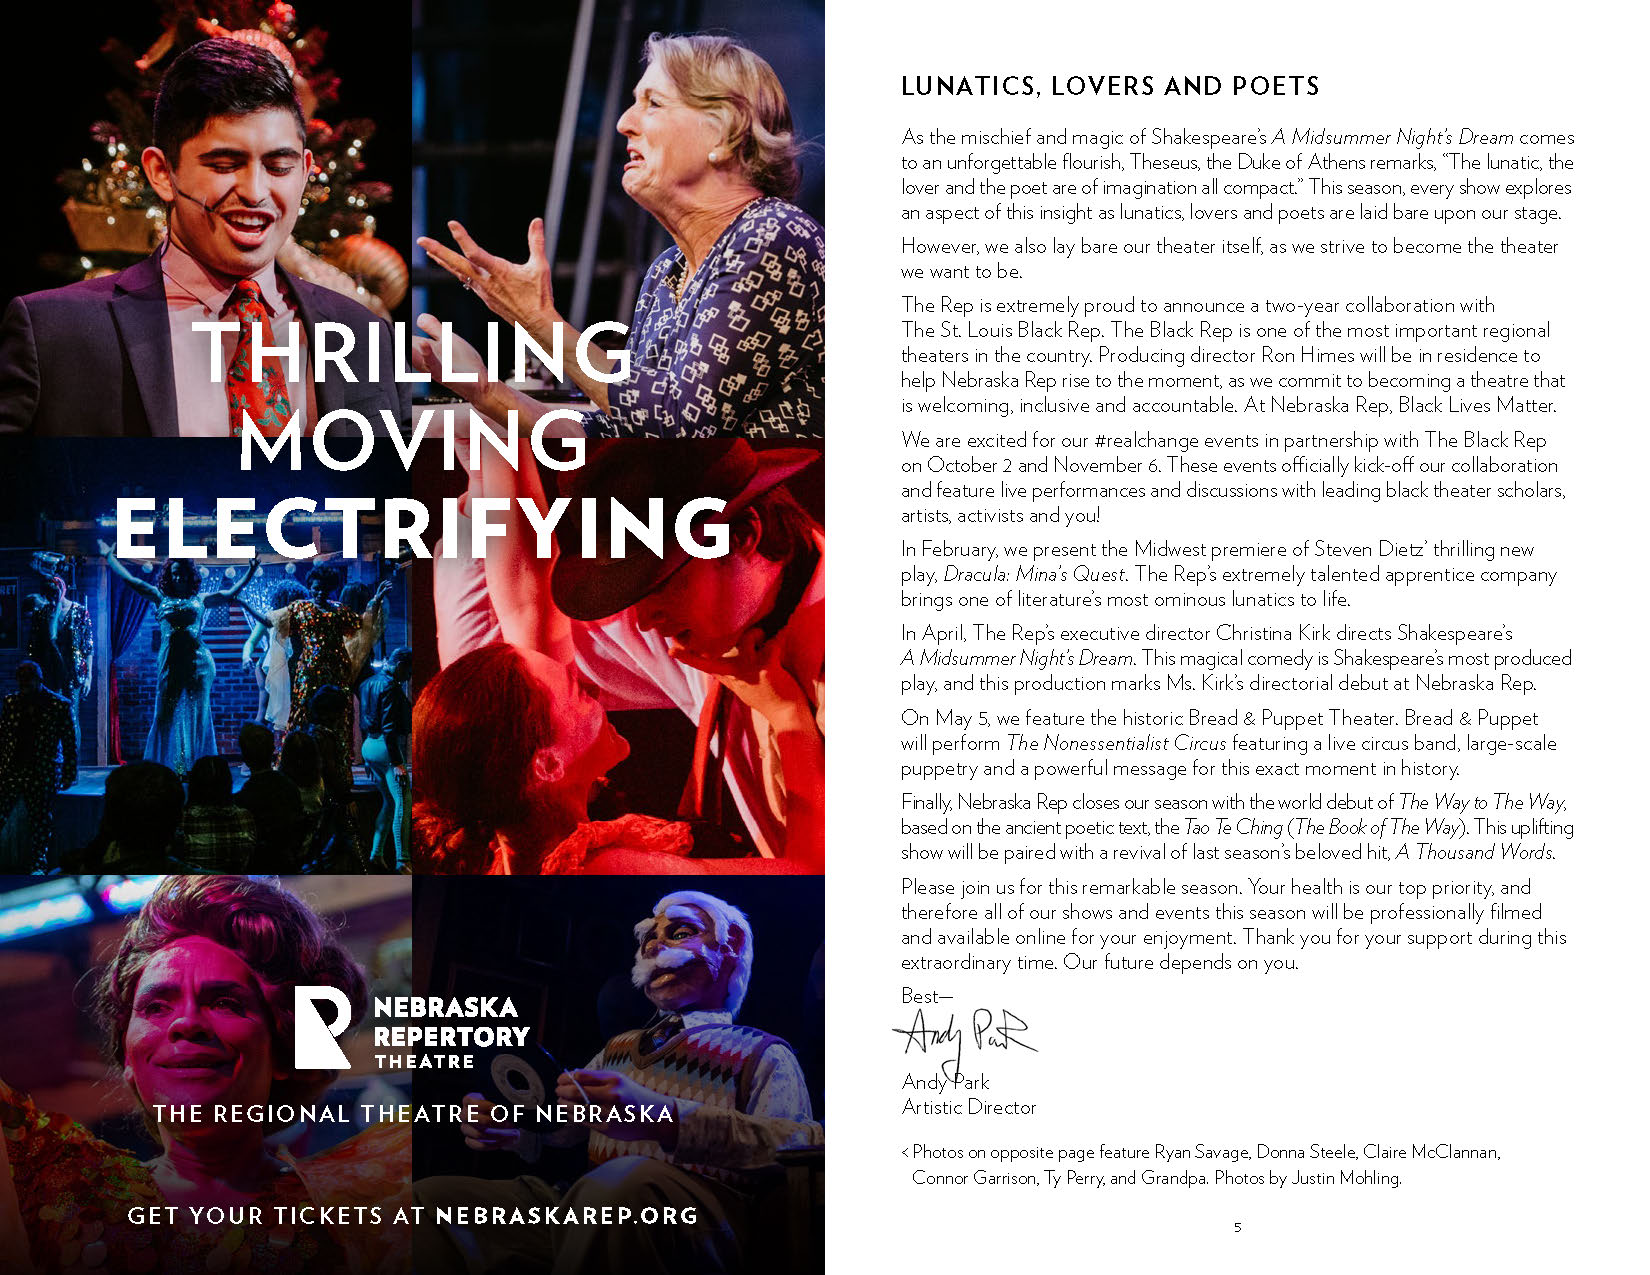 A program spread, with an ad reading 'Thrilling, Moving, Electrifying' on the left overlaid on photos of actors performing in dramatic settings, and a letter from the director on the right.